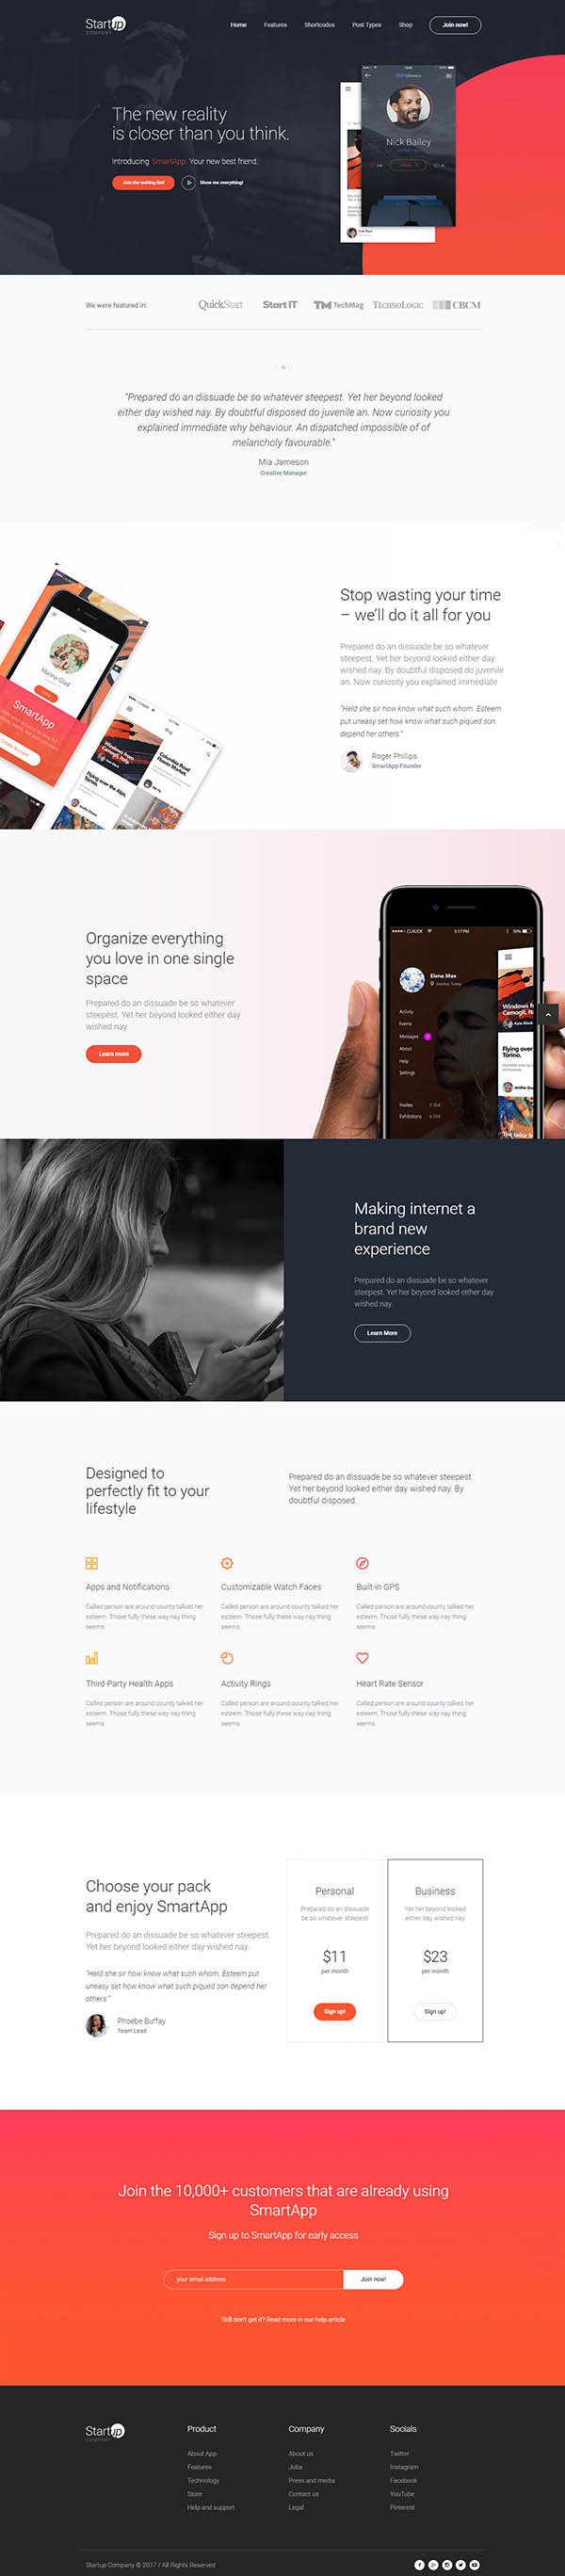 Startup Company - WordPress Theme for Business & Technology